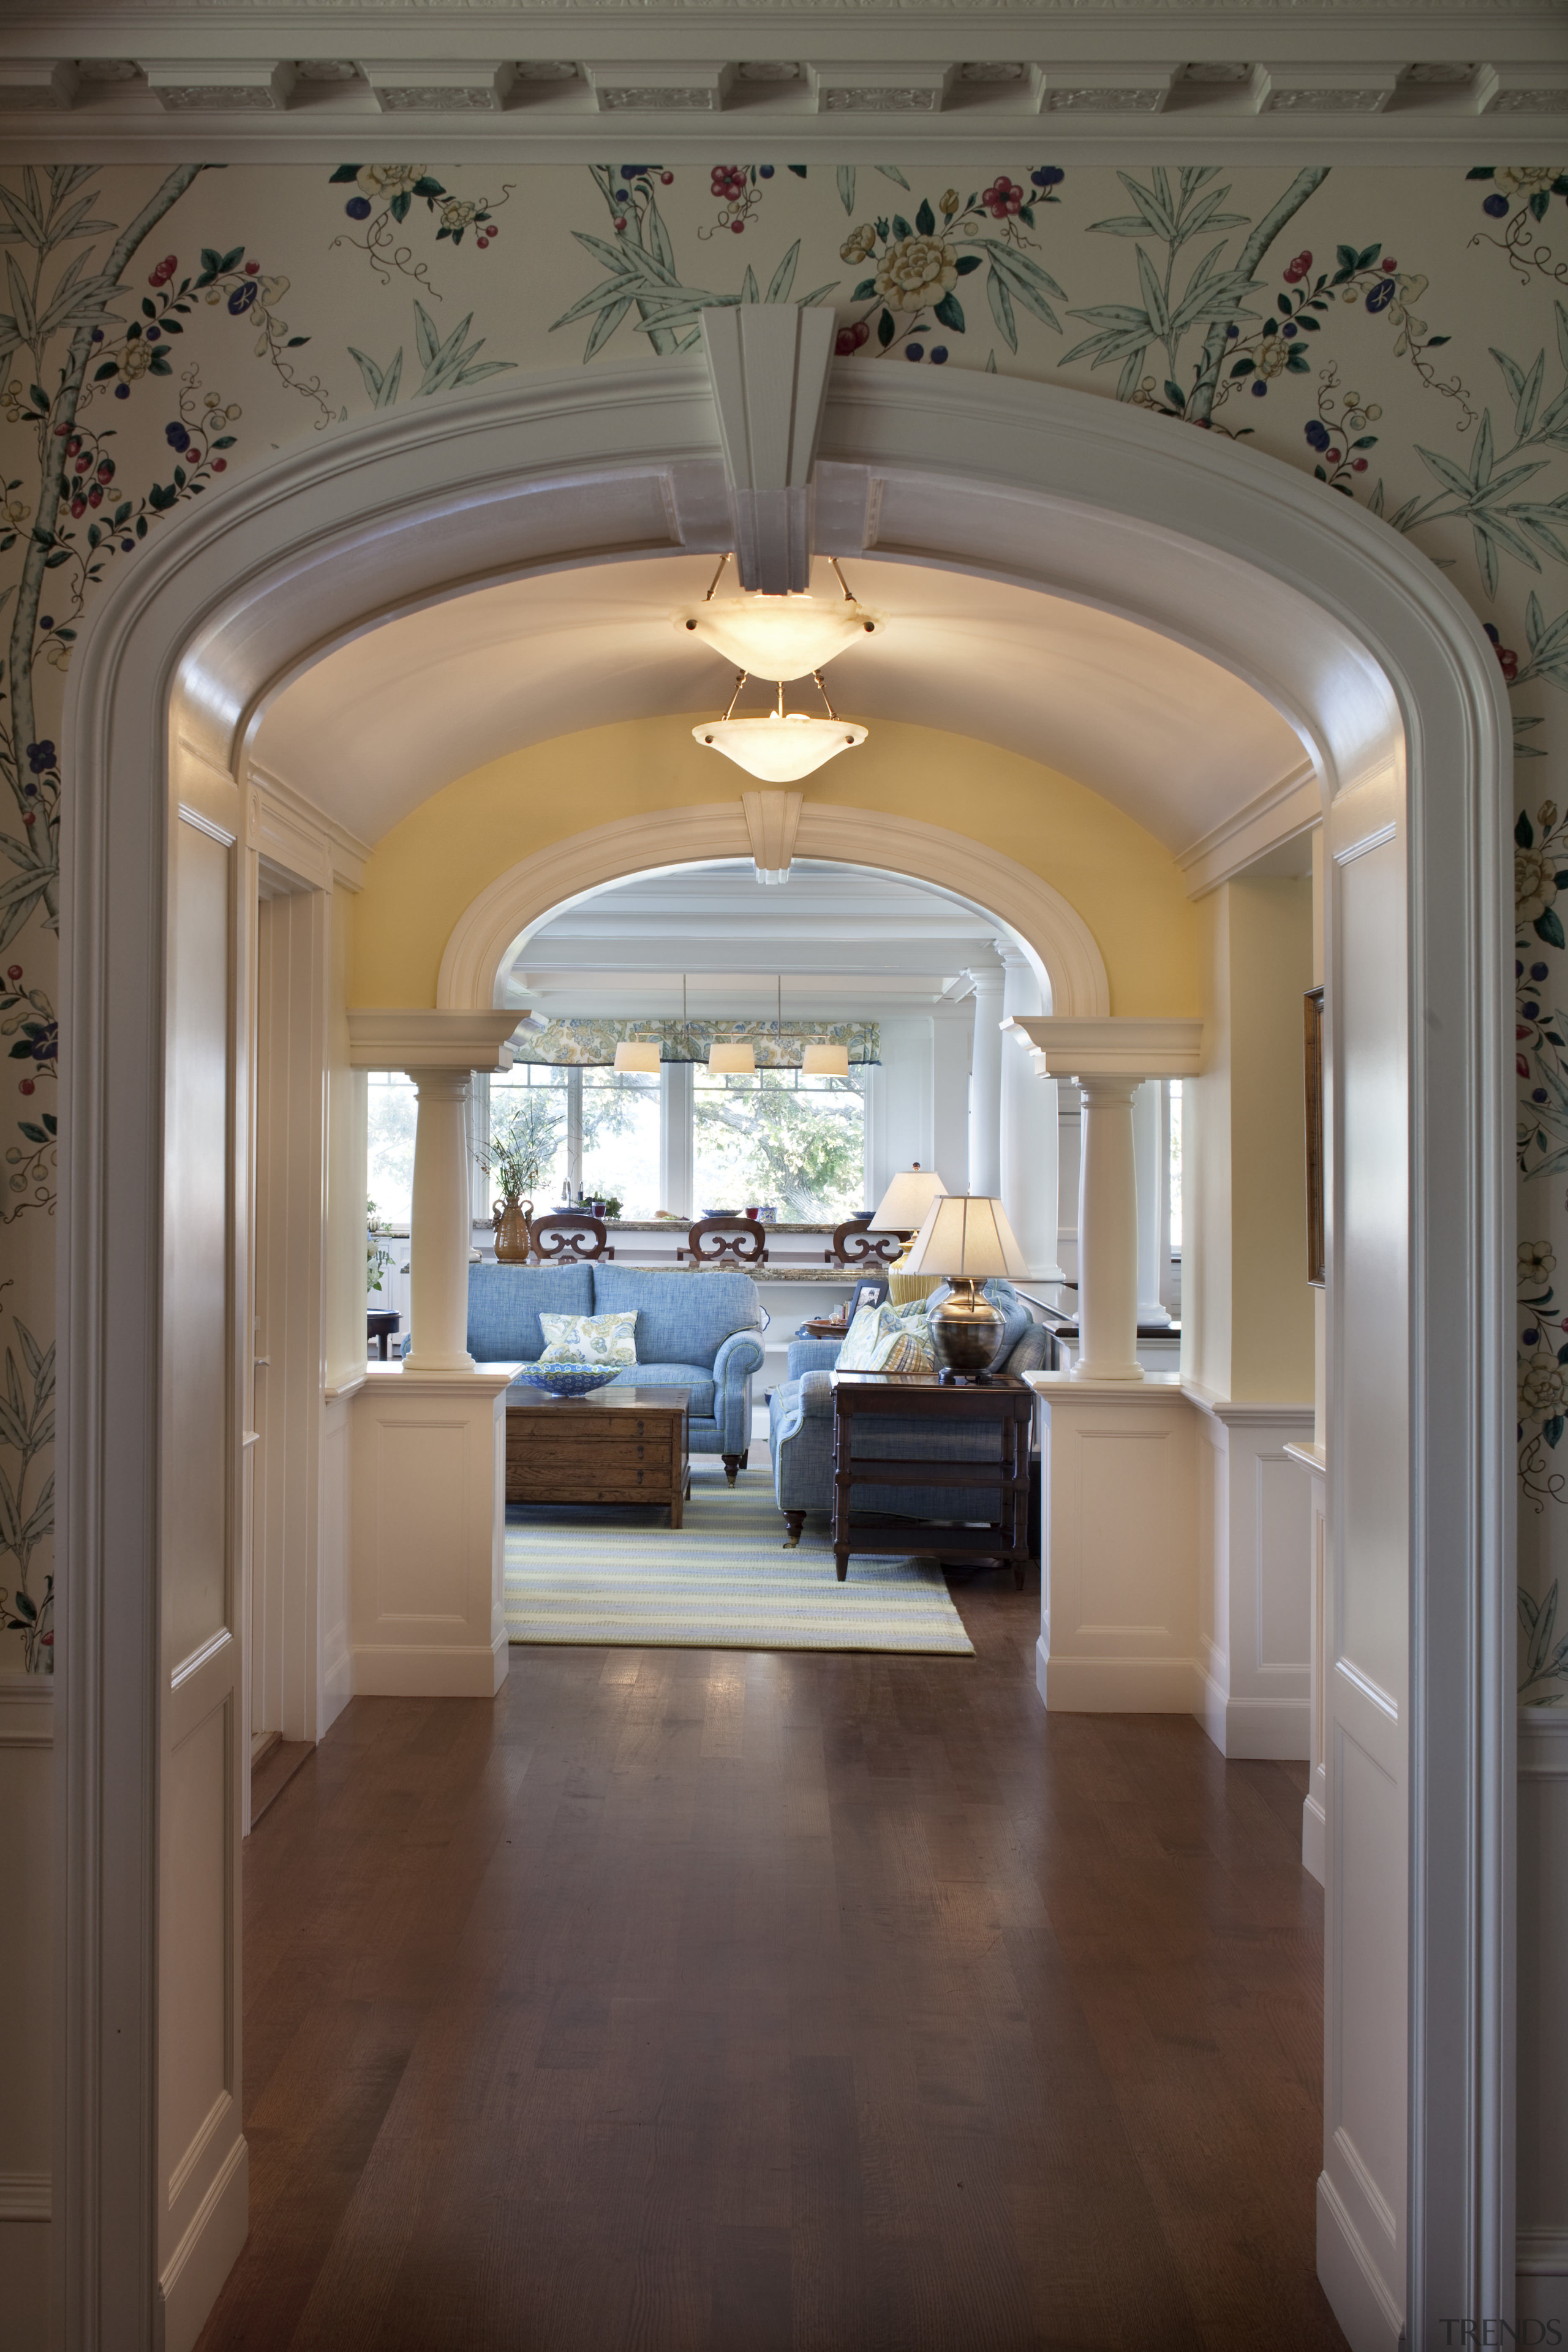 A hallway now provides an easy transition from arch, architecture, ceiling, estate, floor, flooring, home, interior design, wall, gray, brown